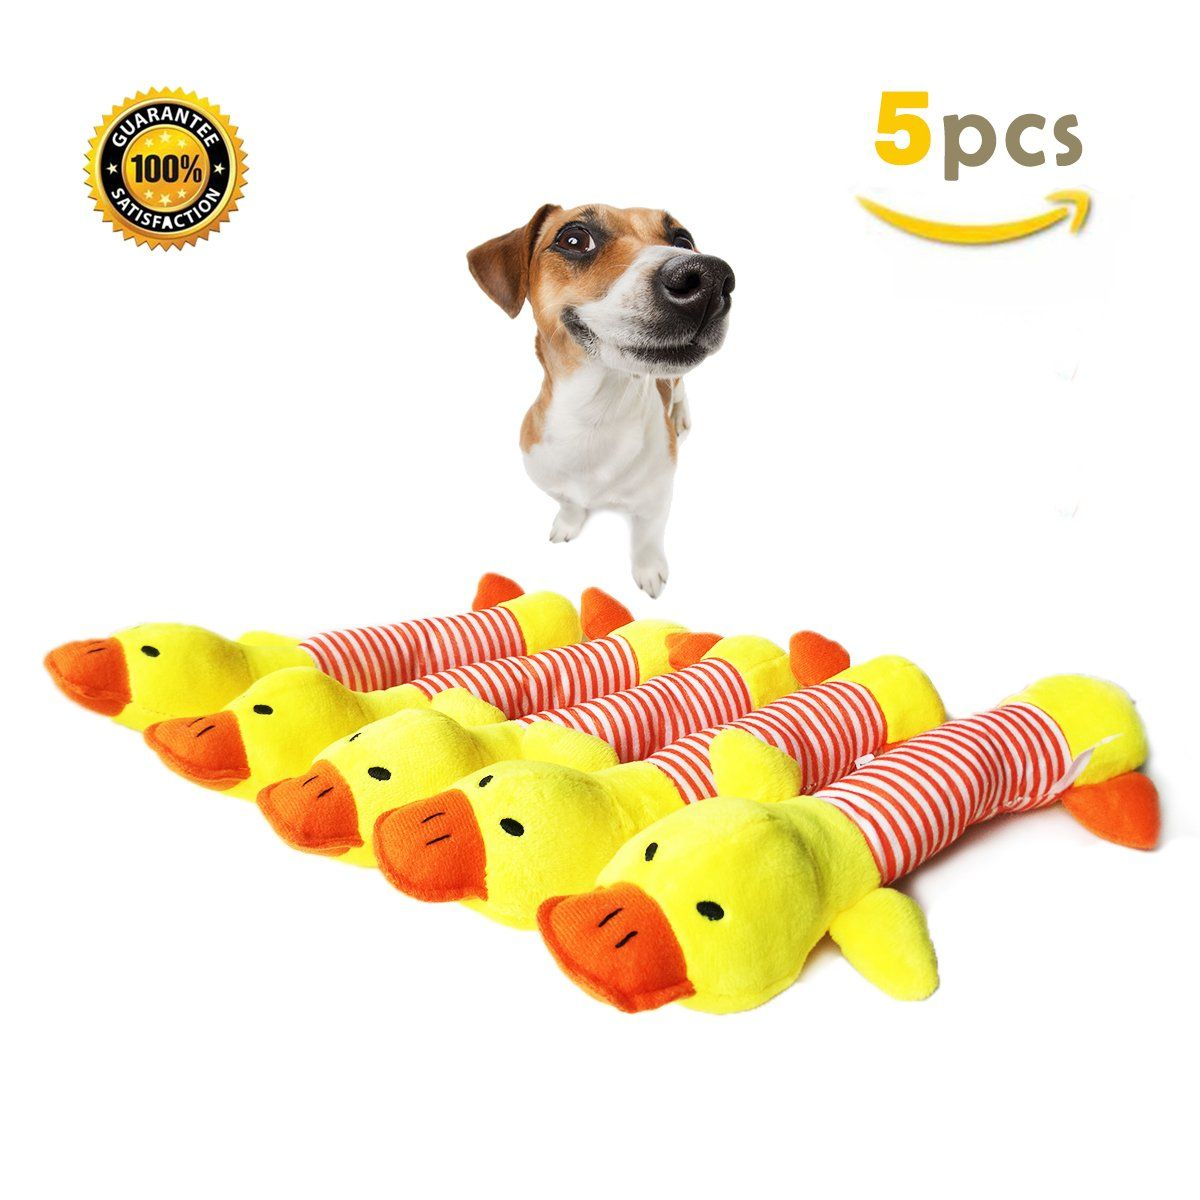 Buibiiu Dog Toys Dog Teething Toys Puppy Chew Toys Best Dog Chew Toys 5 Squeaky Ducks Do Hope That You Actually Dog Teething Toys Toy Puppies Dog Chew Toys